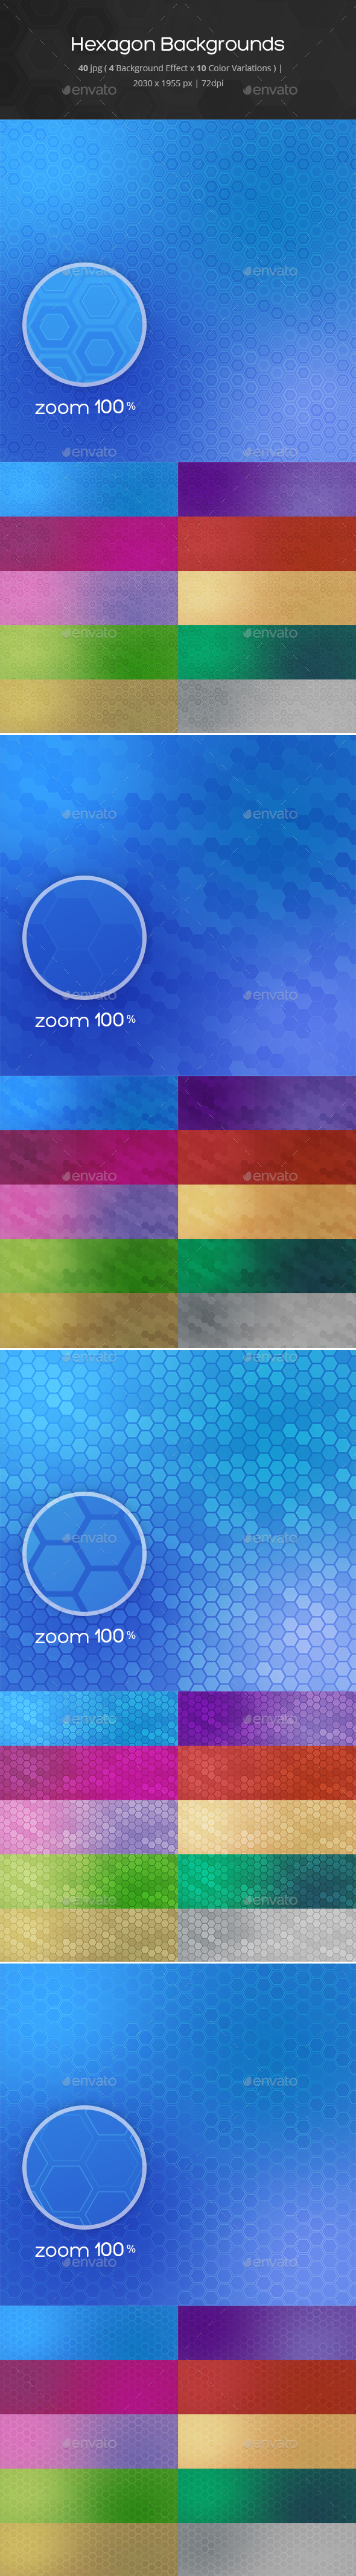 40 Hexagons Backgrounds - Backgrounds Graphics